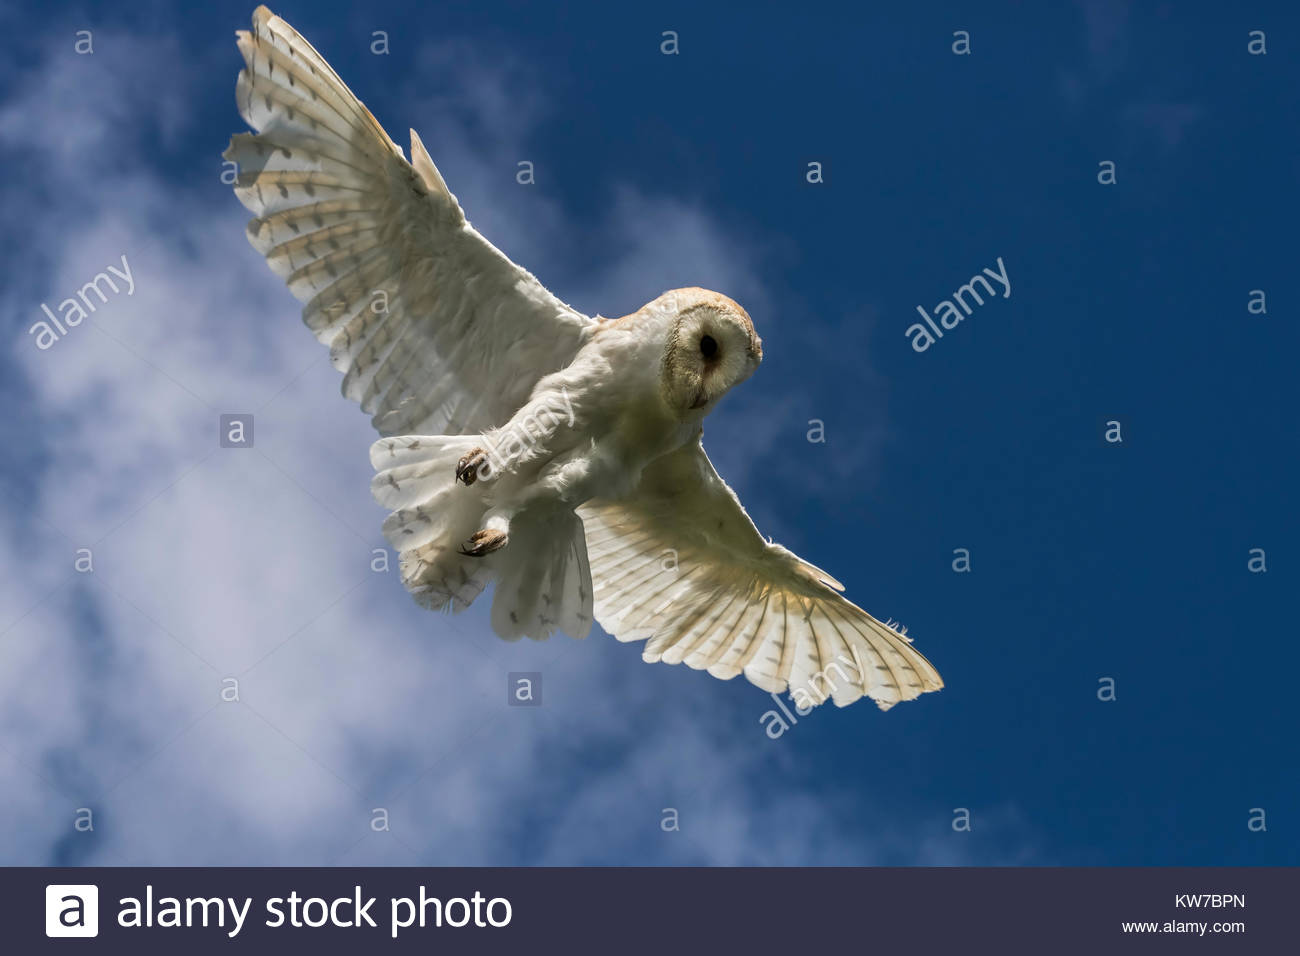 Barn owl (Tyto alba), captive, Cumbria, UK, August 2017 - Stock Image